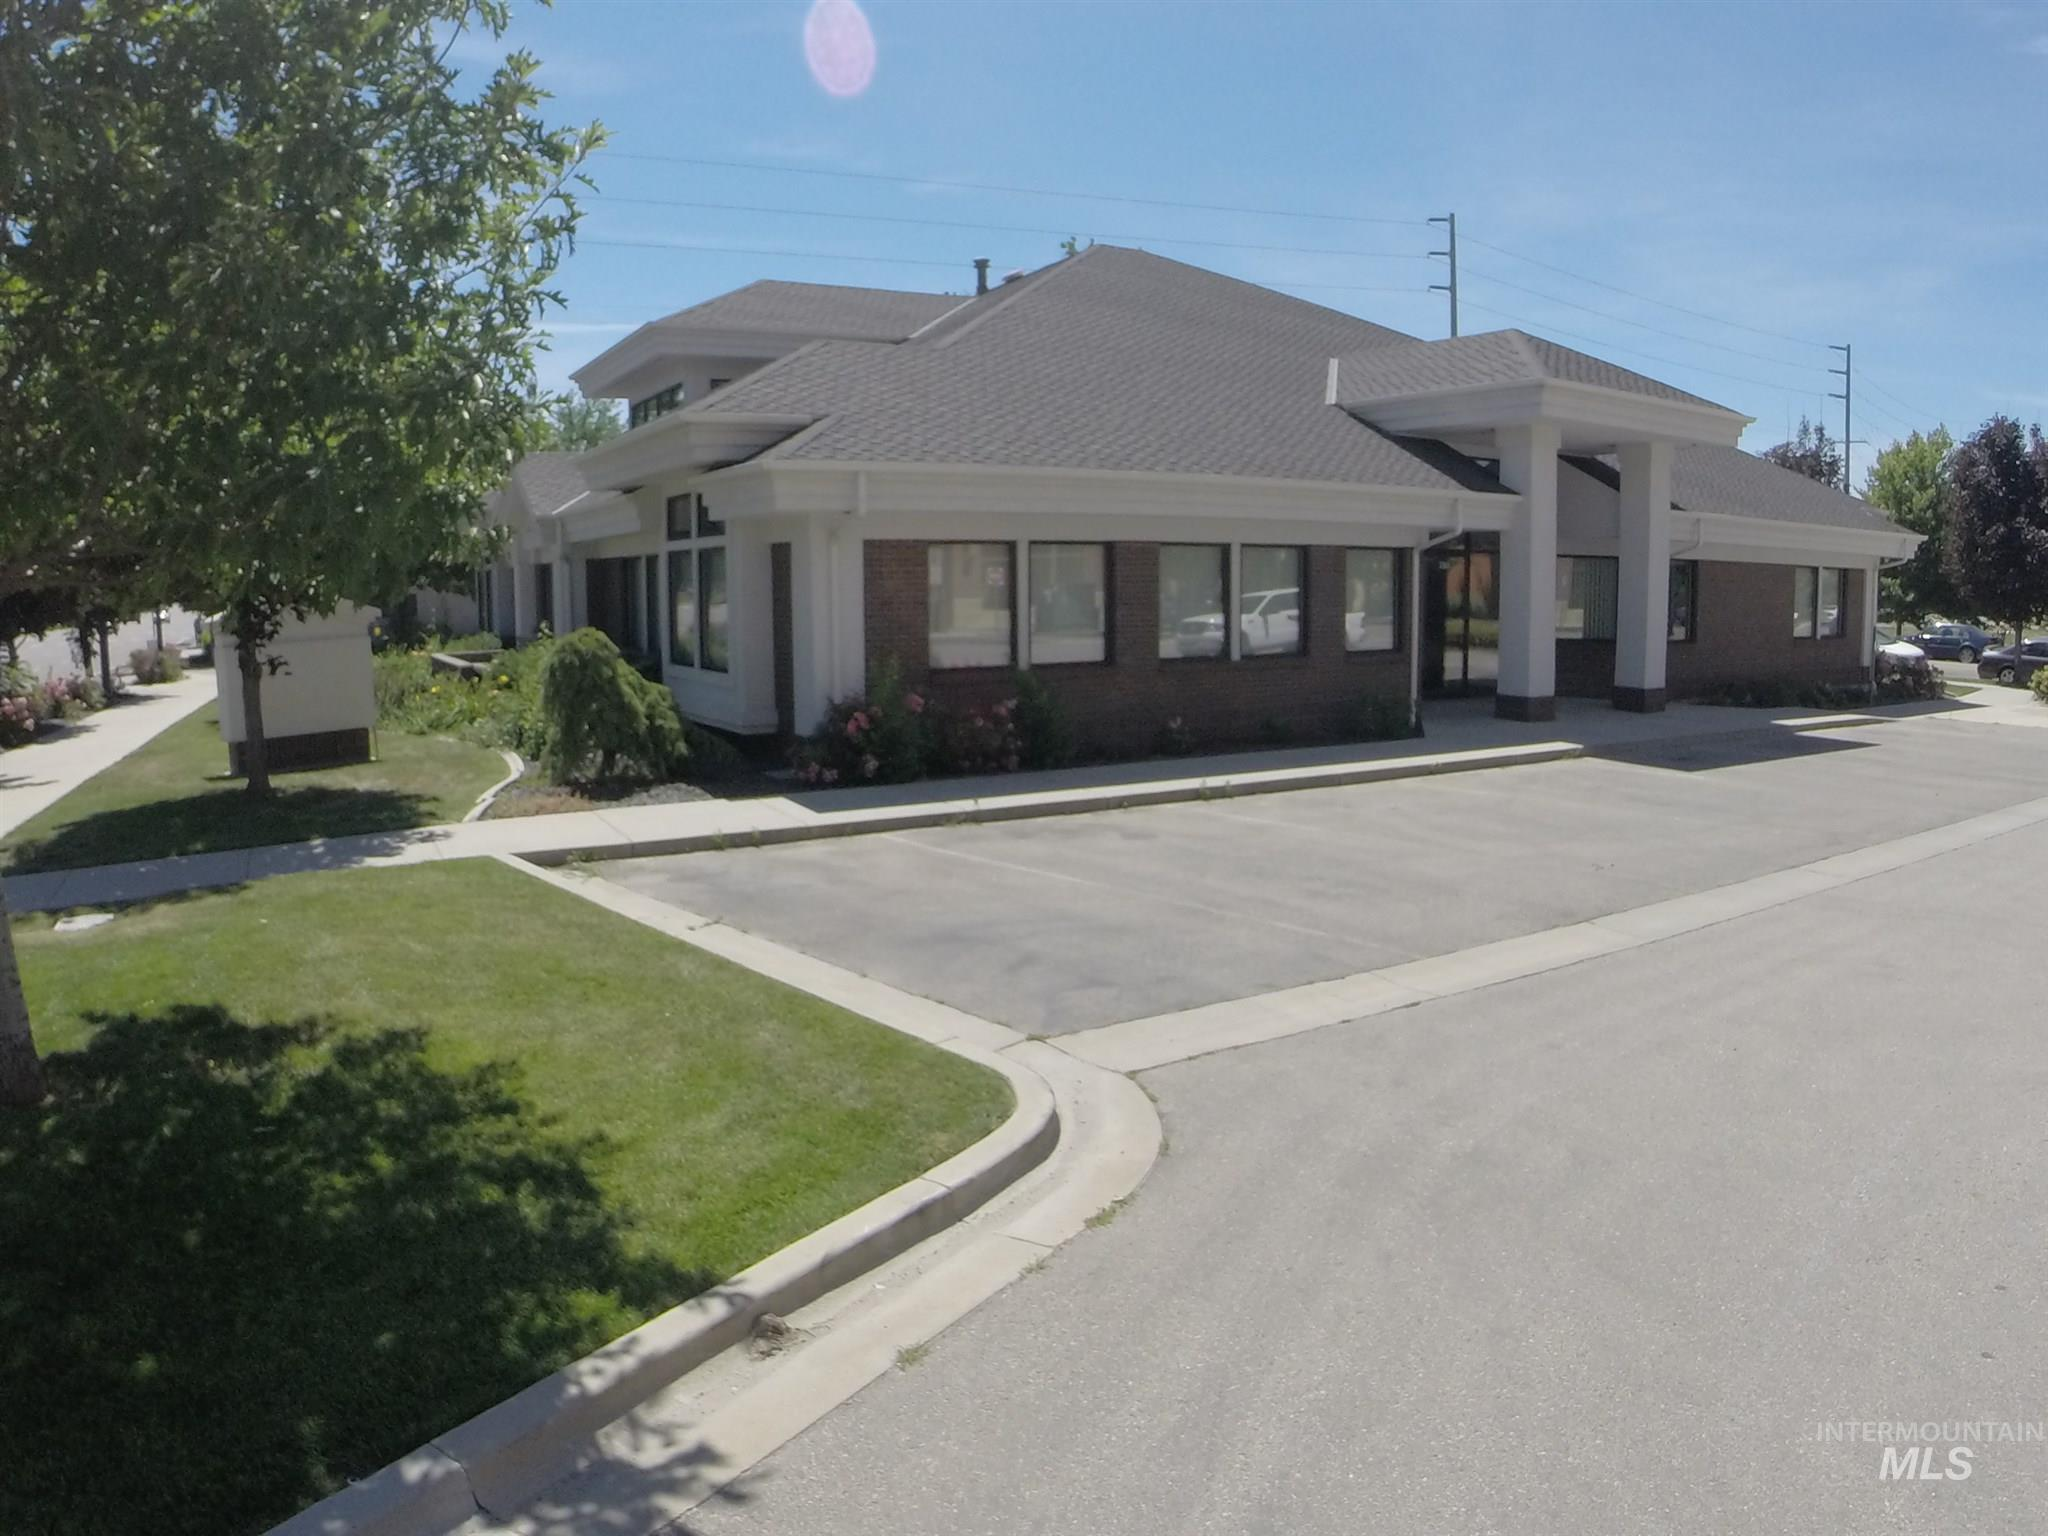 380 S 4th Property Photo - Boise, ID real estate listing